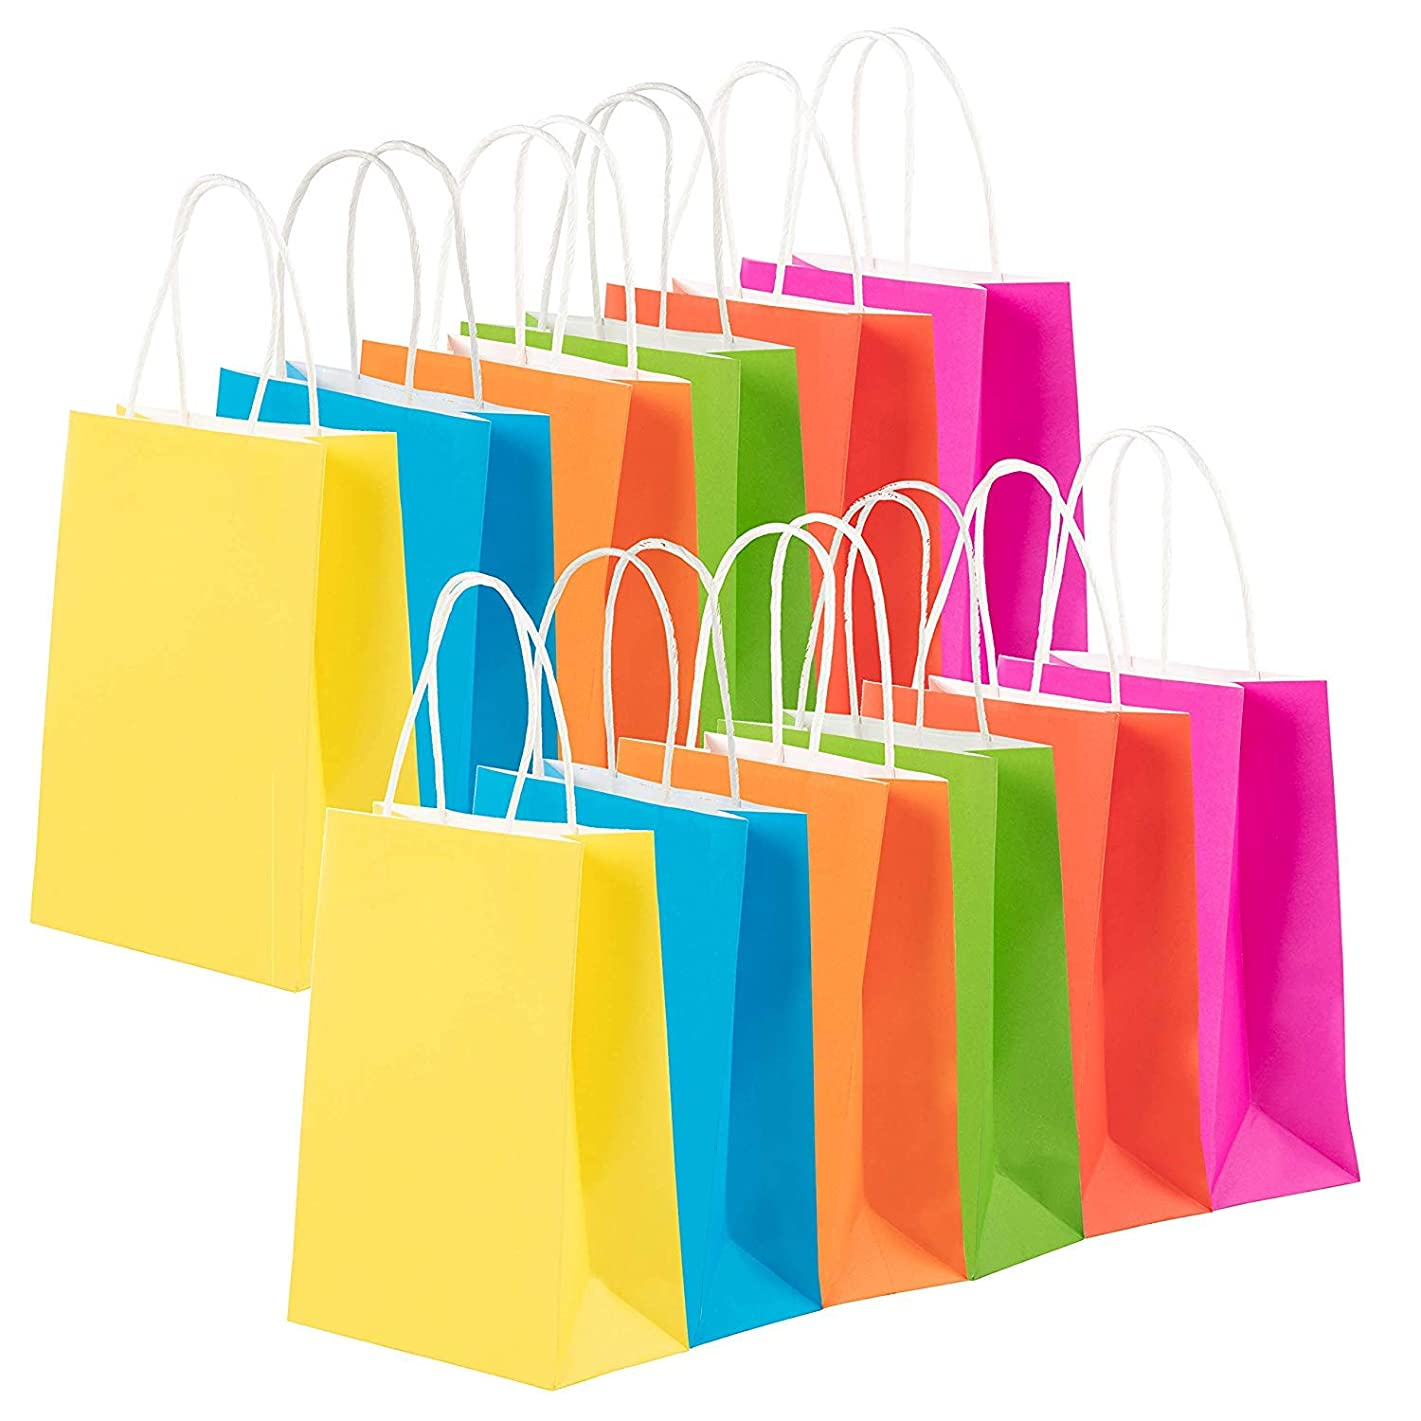 Juvale 48-Pack Bulk Small Neon Colored Paper Gift Bags with Handles for Retail, Shopping, Party Favors, Fuchsia Pink, Red, Blue, Green, Orange, Yellow, 6.3 x 3.1 x 8.6 Inches